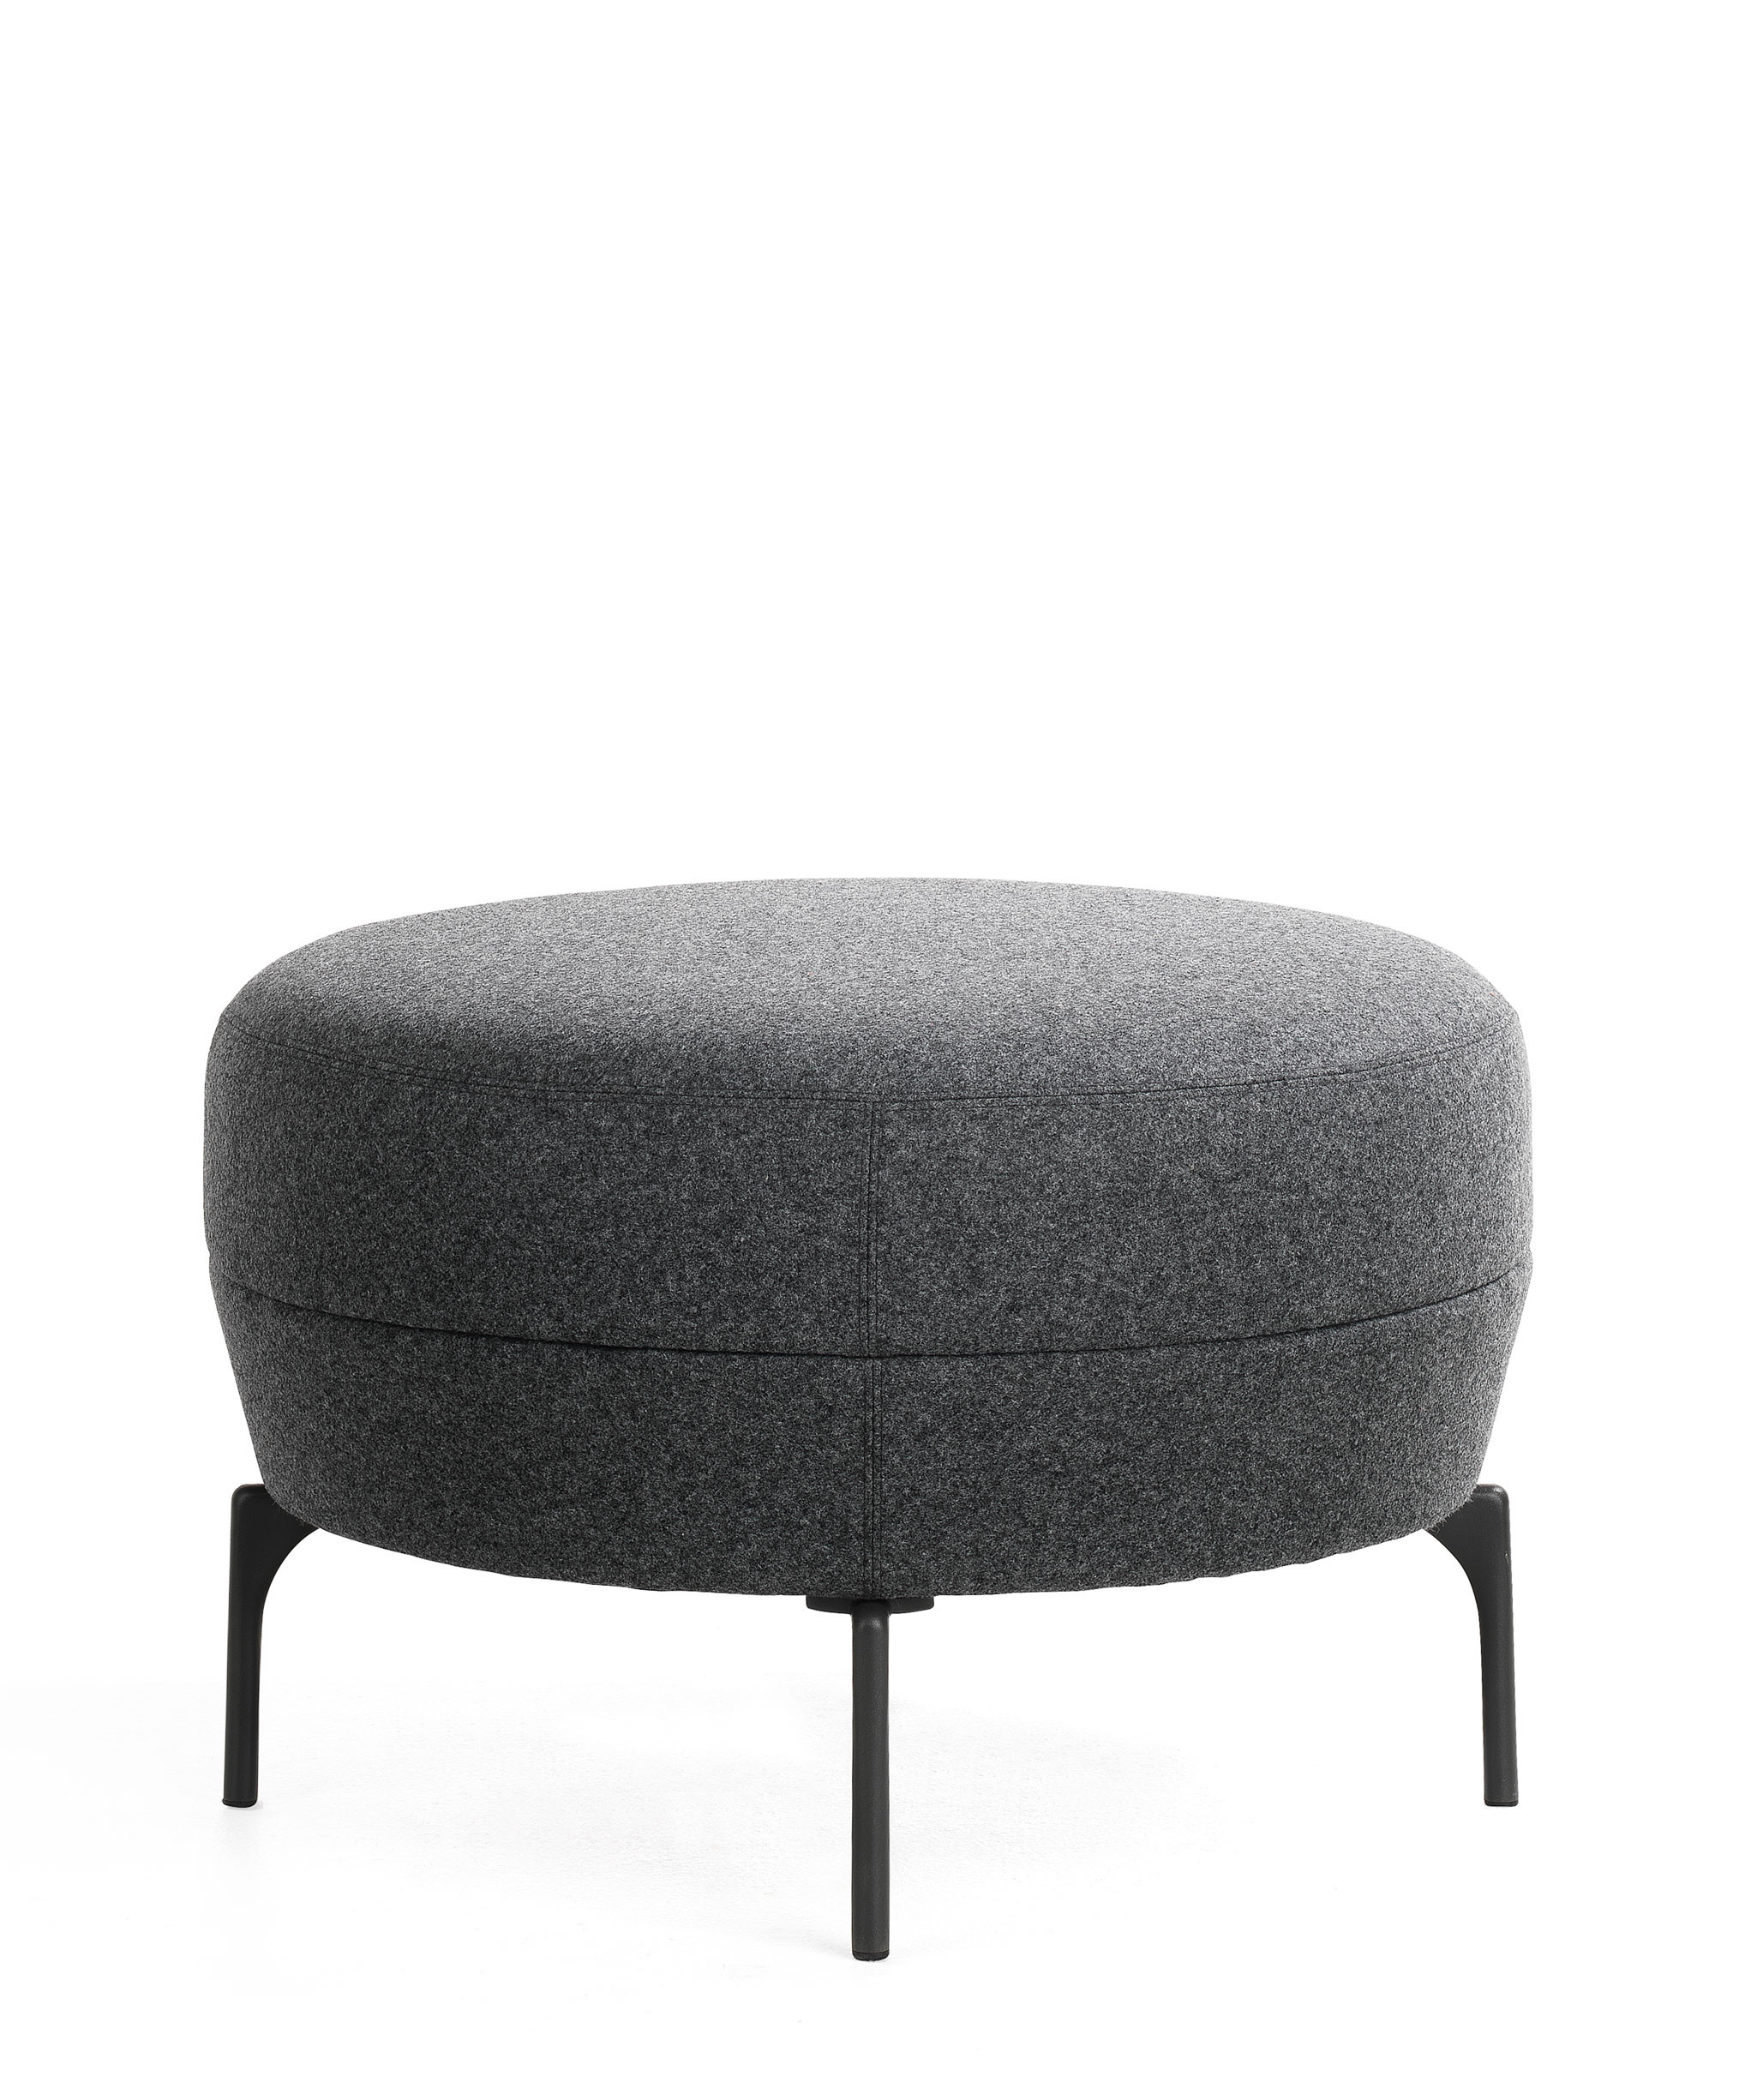 Addit U2013 Ottoman Small